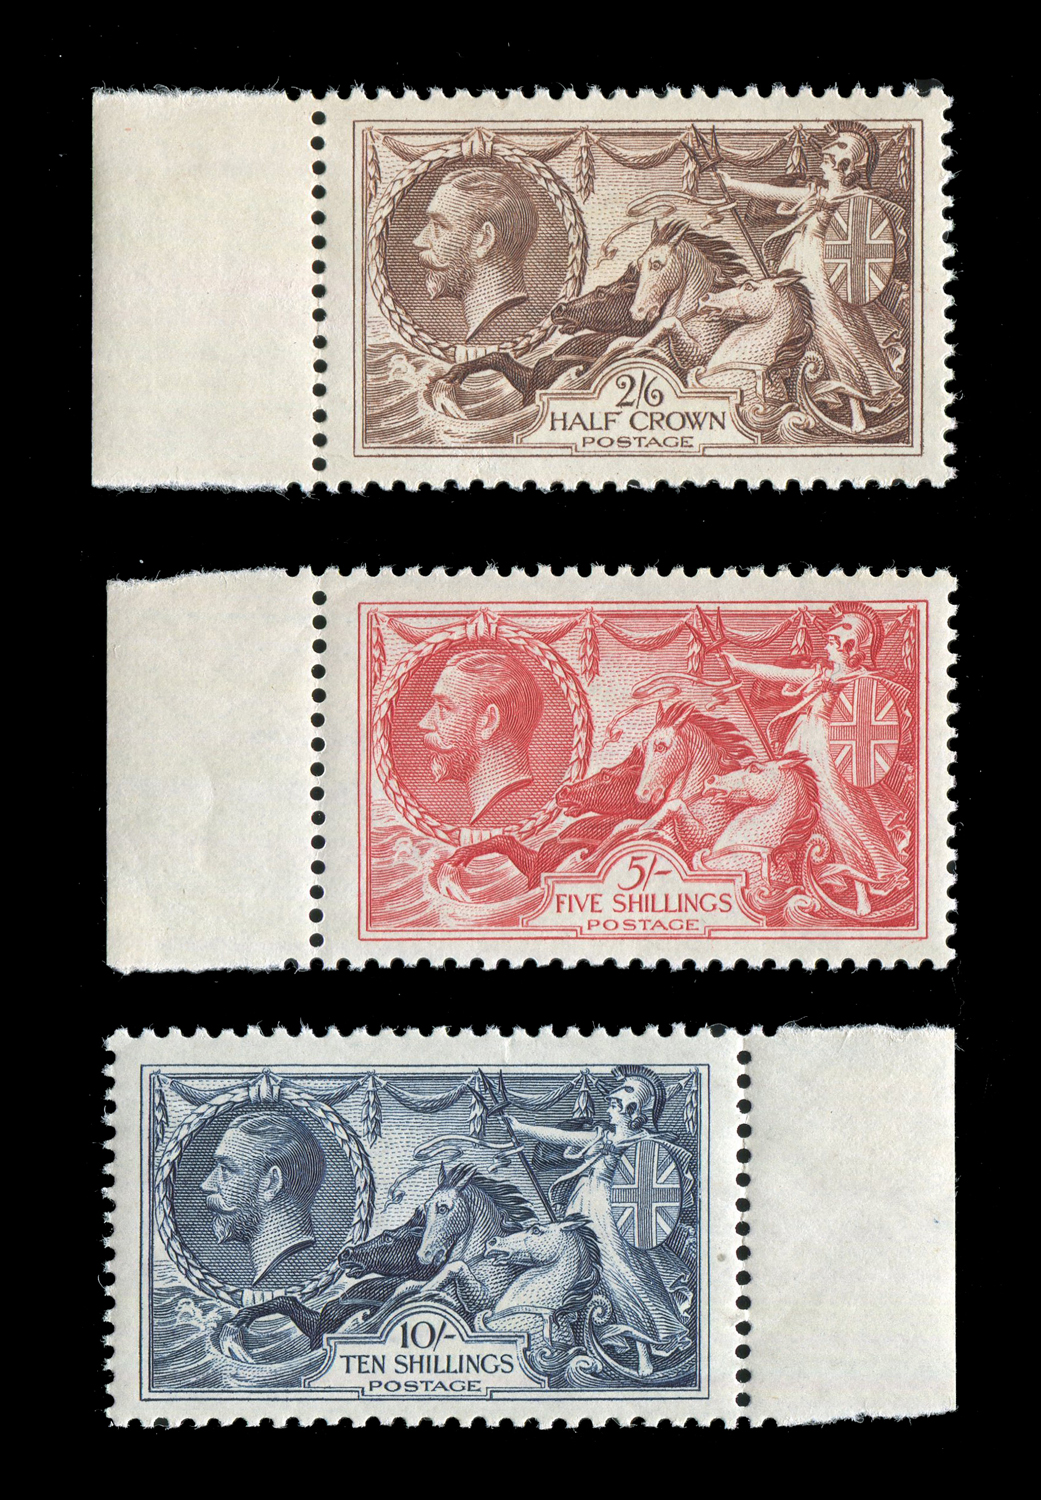 Lot 3007 - A Great Britain 1934 re-engraved 2/6d, 5 shillings, 10 shillings fine unmounted mint marginal set.